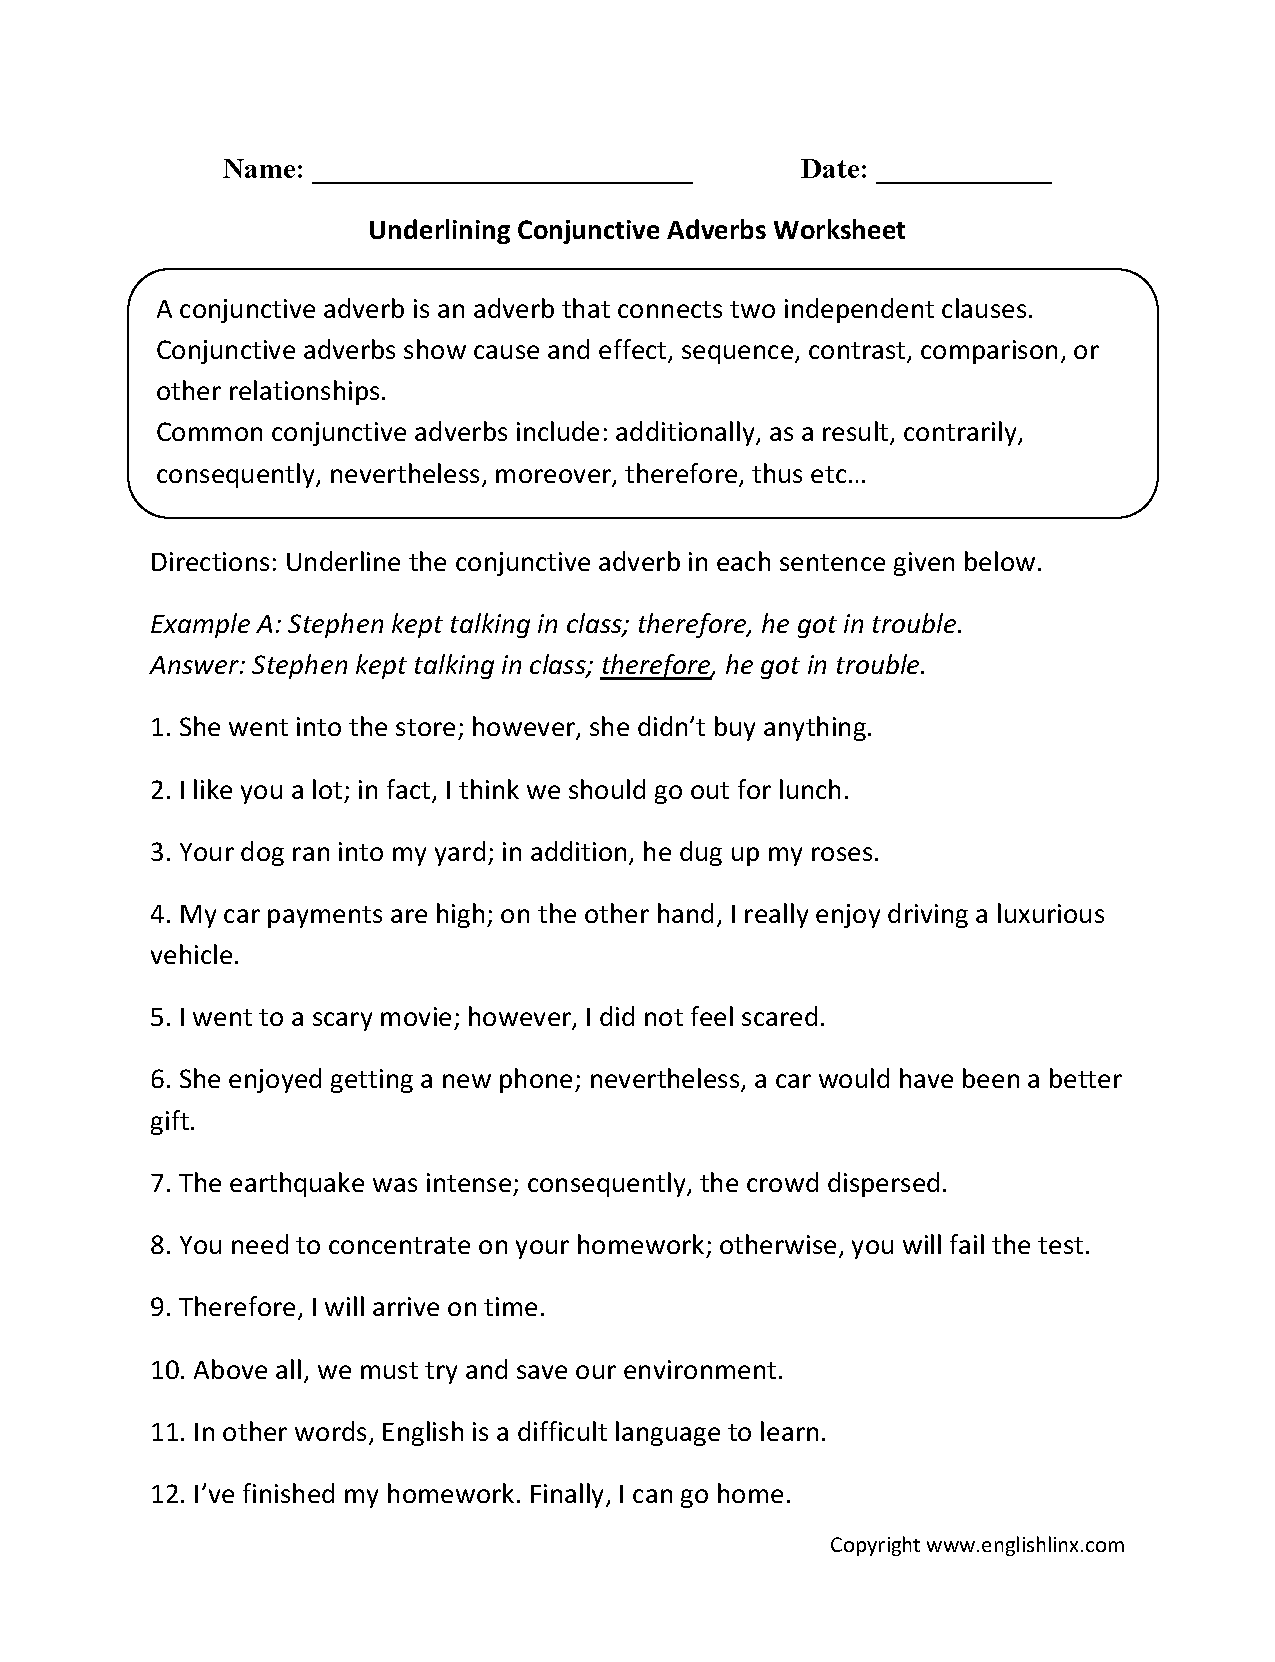 Weirdmailus  Picturesque Englishlinxcom  Conjunctions Worksheets With Magnificent Worksheet With Beautiful Math For Grade  Printable Worksheet Also Year  Math Worksheets In Addition Lewis Structures Worksheets And Preschool Alphabet Writing Worksheets As Well As Picture Graph Worksheets First Grade Additionally Large Print Worksheets From Englishlinxcom With Weirdmailus  Magnificent Englishlinxcom  Conjunctions Worksheets With Beautiful Worksheet And Picturesque Math For Grade  Printable Worksheet Also Year  Math Worksheets In Addition Lewis Structures Worksheets From Englishlinxcom